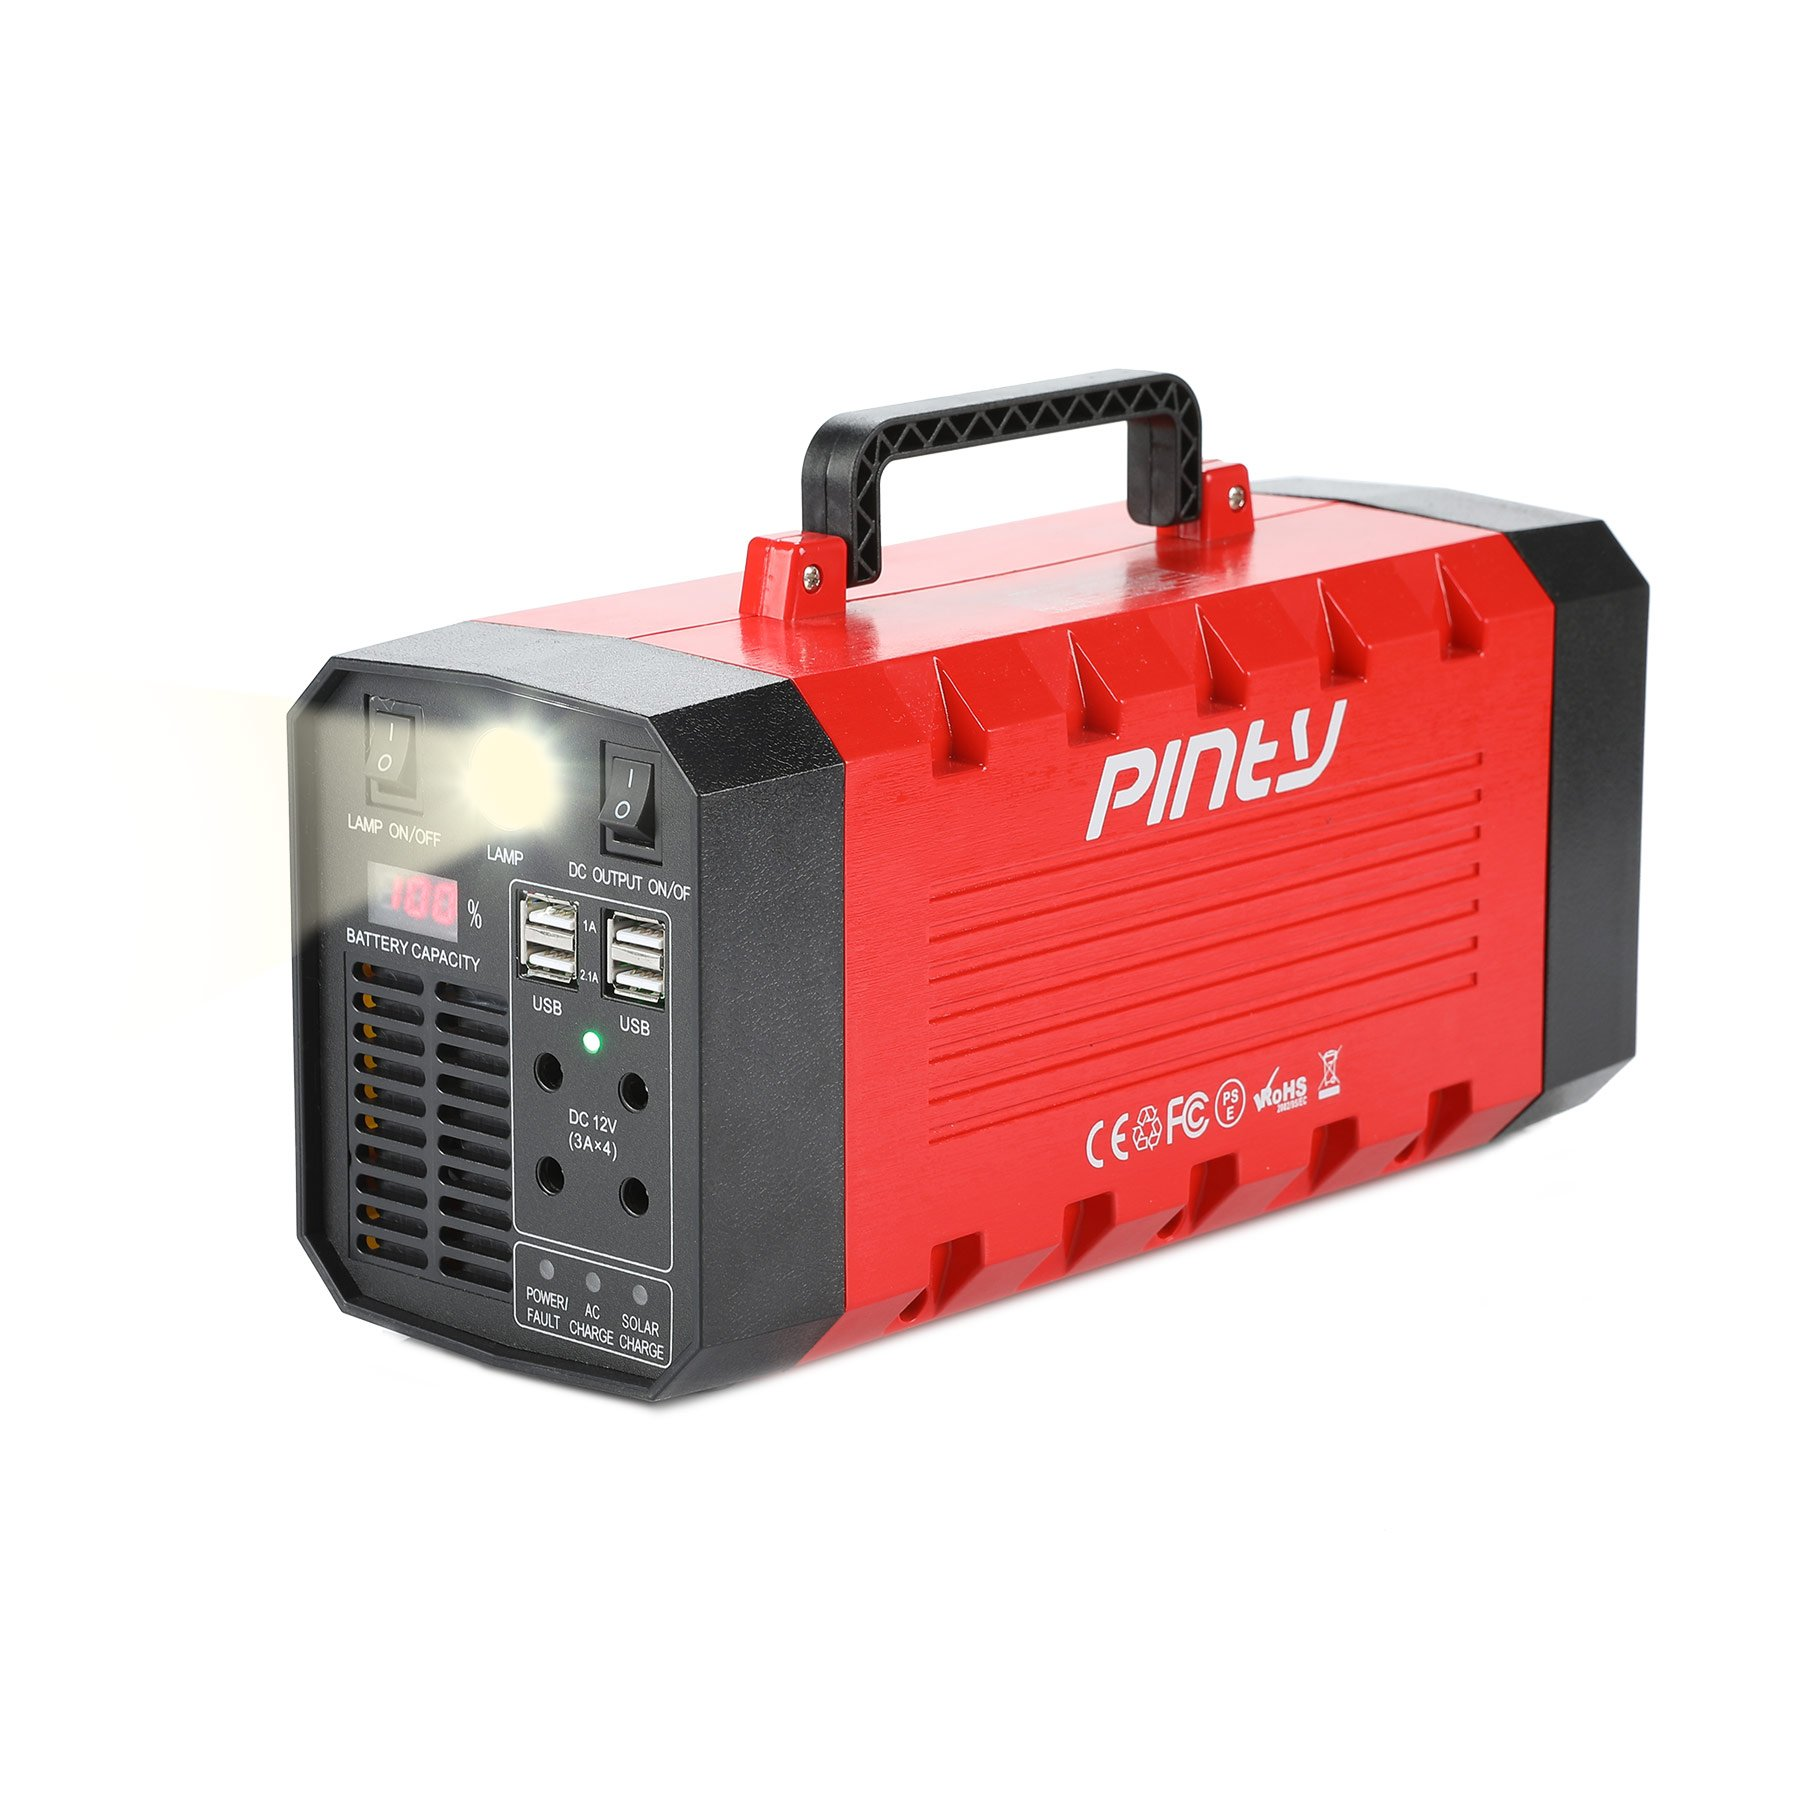 Pinty Portable Uninterrupted Power Supply 500W, UPS Battery Backup, Rechargeable Generator Power Source with AC Inverter, USB, DC 12V Outputs for Outdoors and Indoors (500W/288Wh/12V 26Ah)